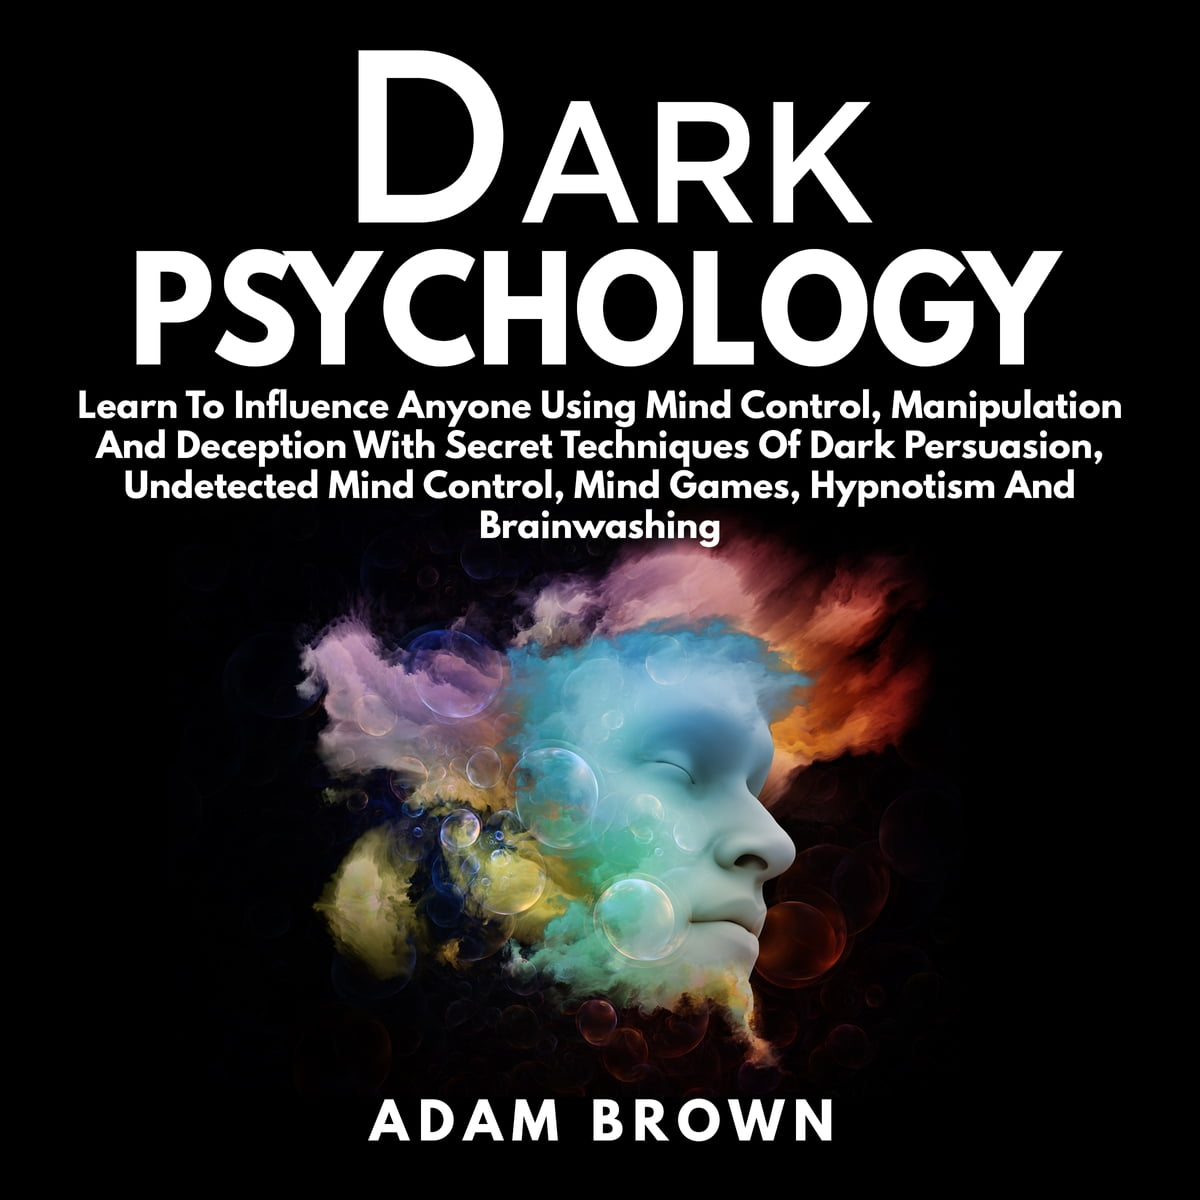 Dark Psychology: Learn To Influence Anyone Using Mind Control, Manipulation  And Deception With Secret Techniques Of Dark Persuasion audiobook by Adam